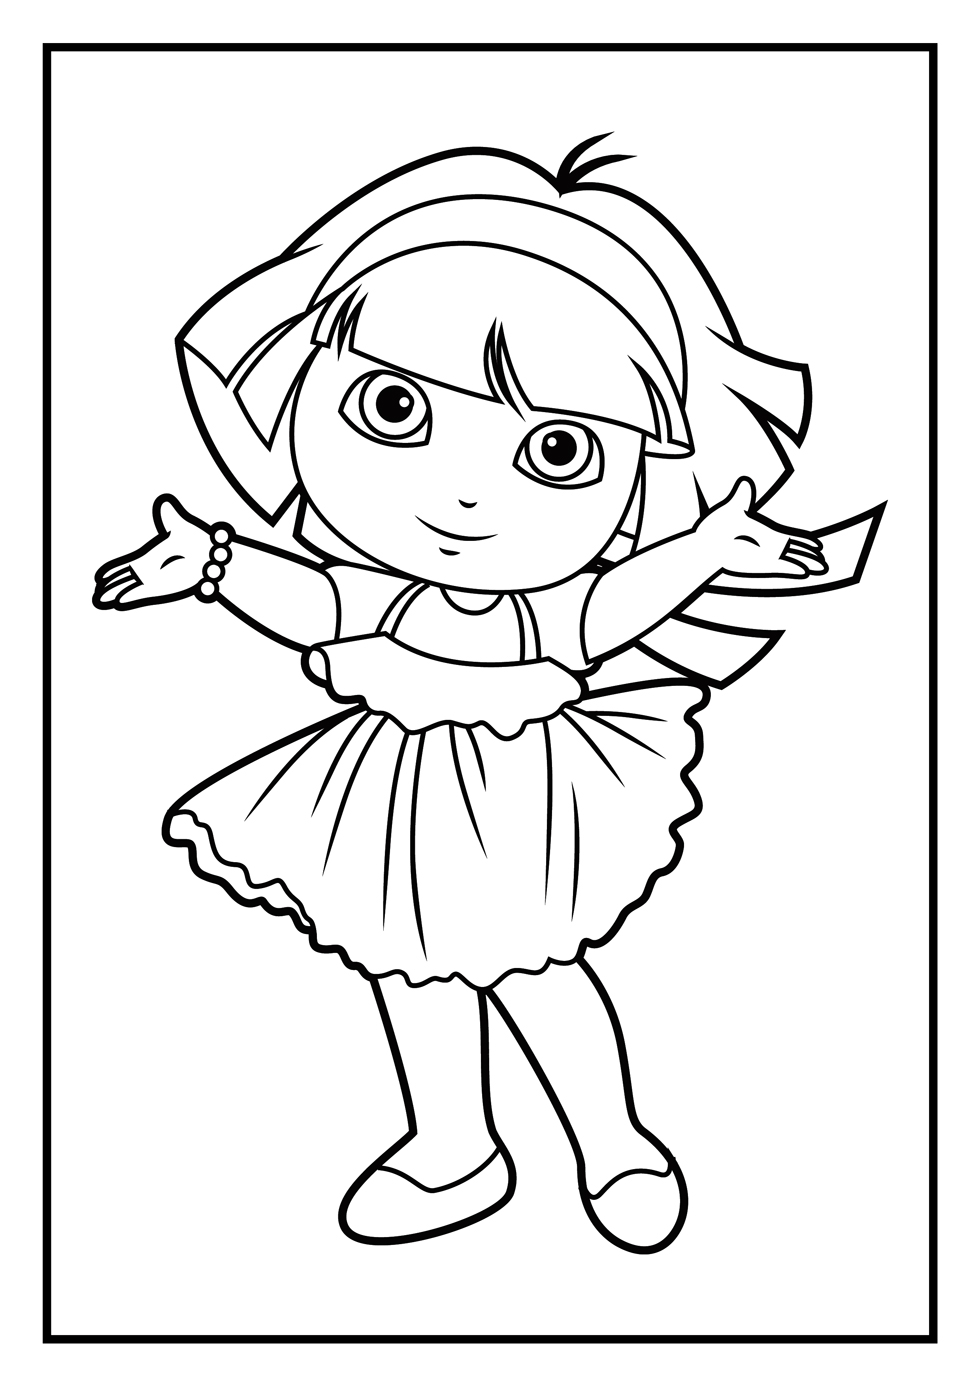 dora colouring pictures dora coloring pages diego coloring pages dora colouring pictures